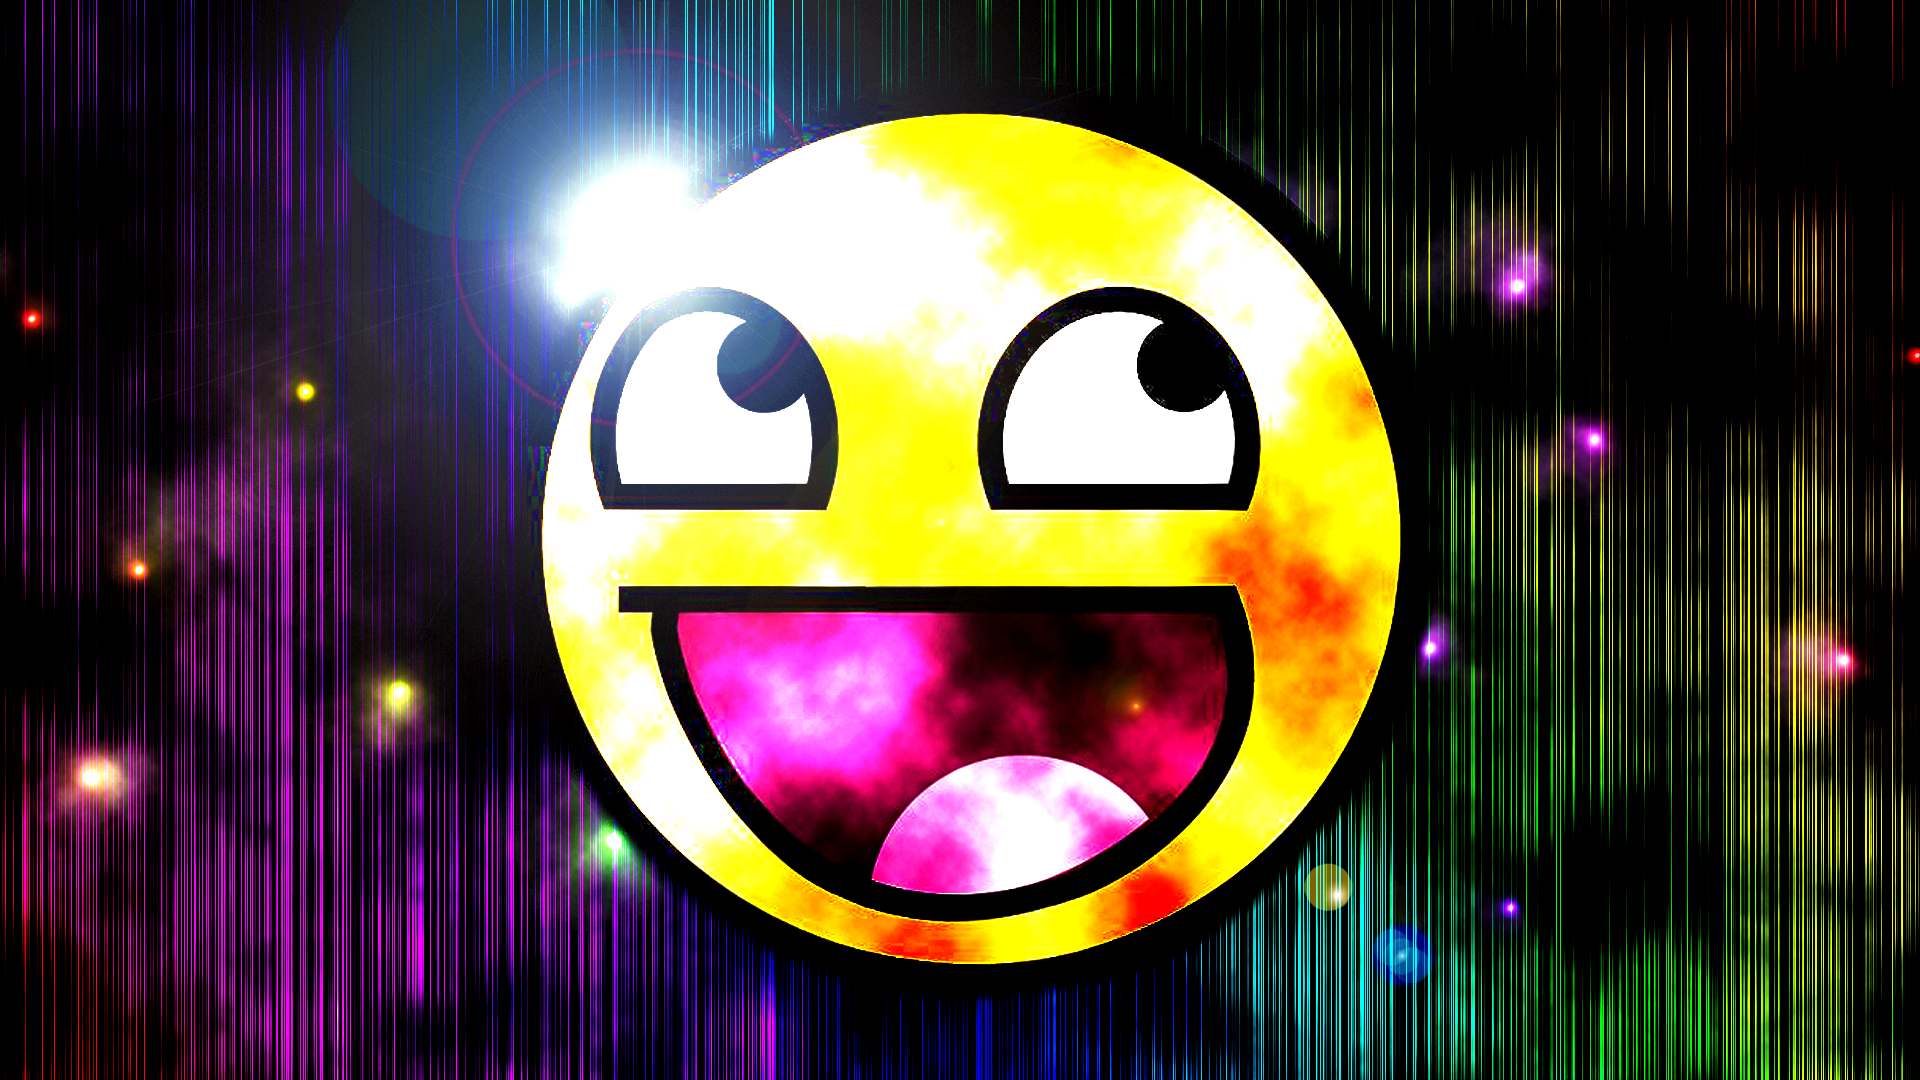 Awesome Smiley Face wallpaper   903497 1920x1080